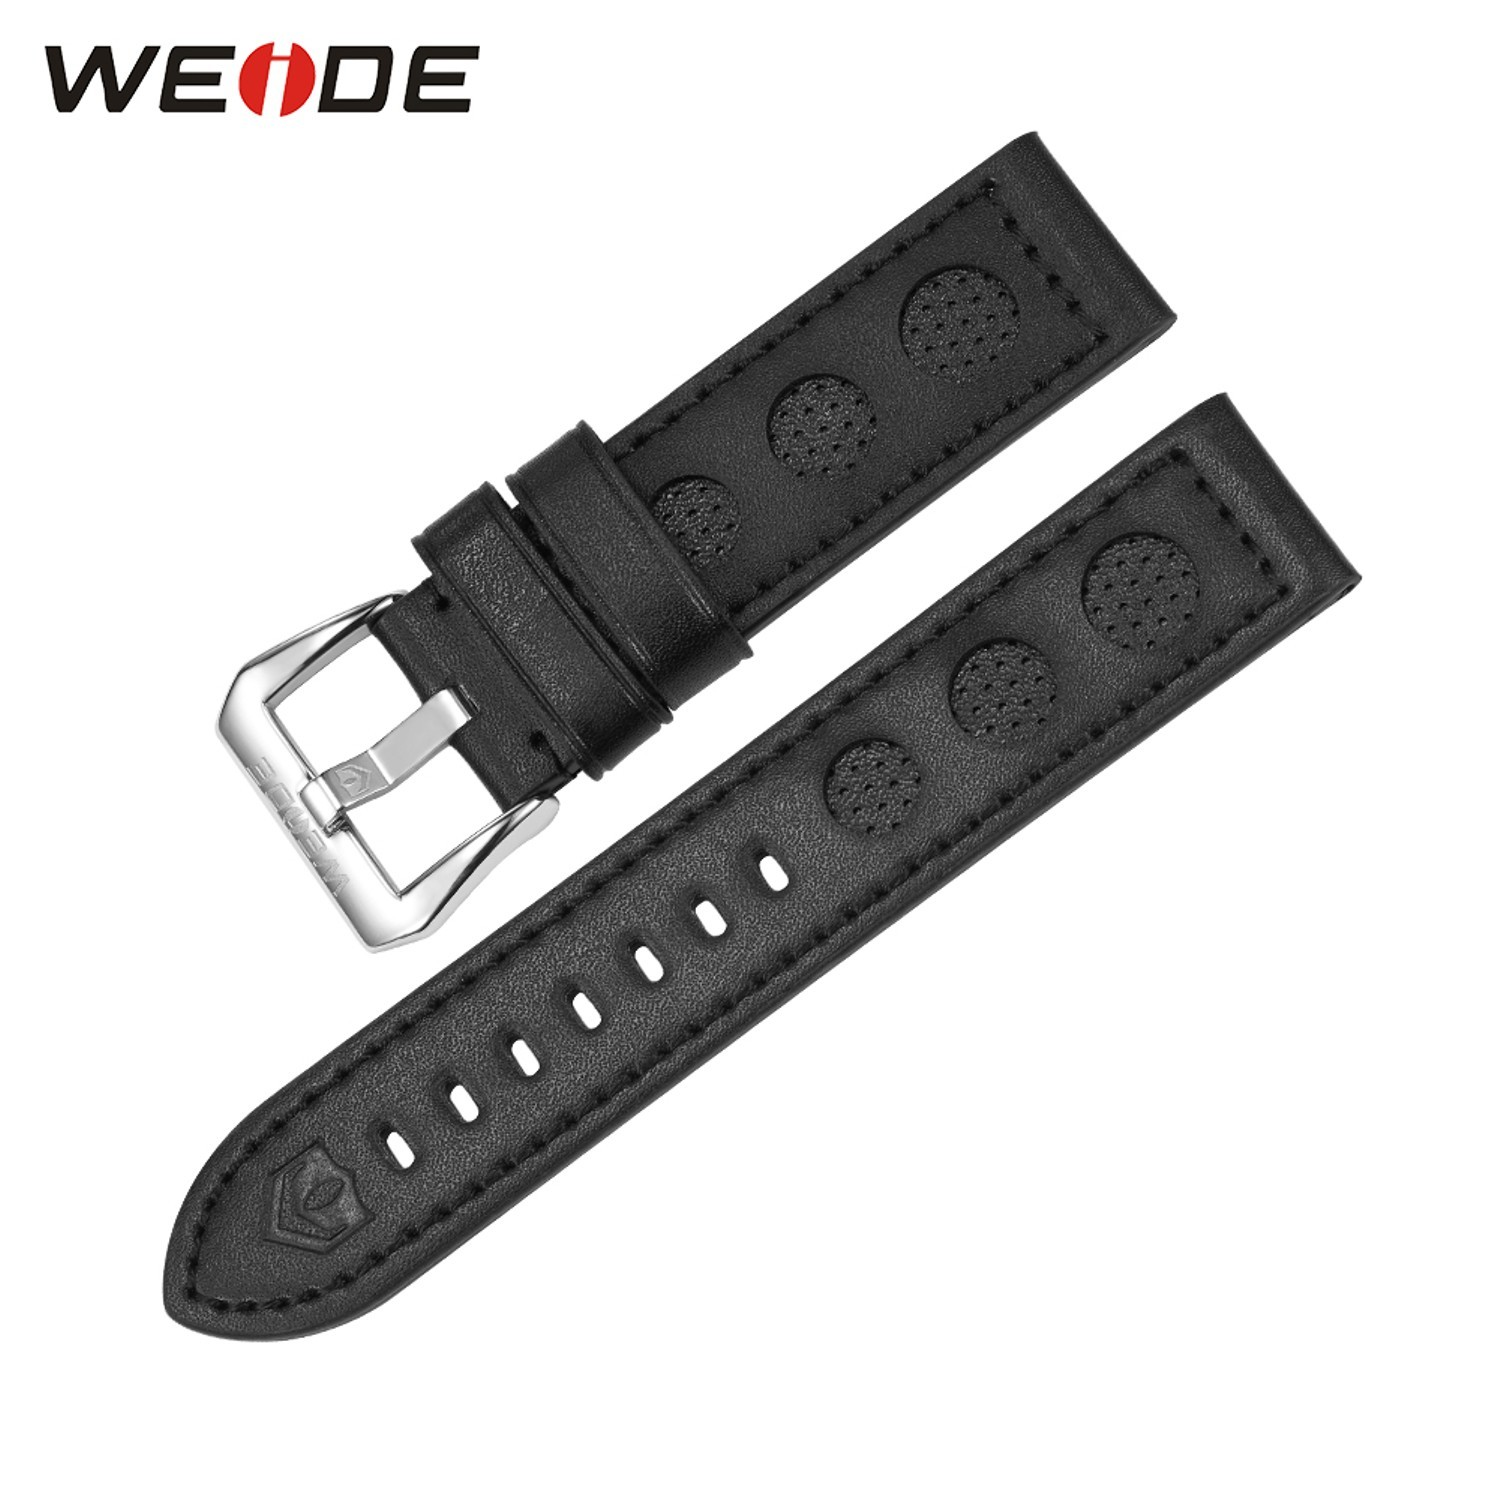 WEIDE-Brand-Luxury-Fashion-Men-s-Leather-Strap-Black-Color-Band-Width-22mm-High-Quality-Leather_1500x1500_STRETCH_361.jpg